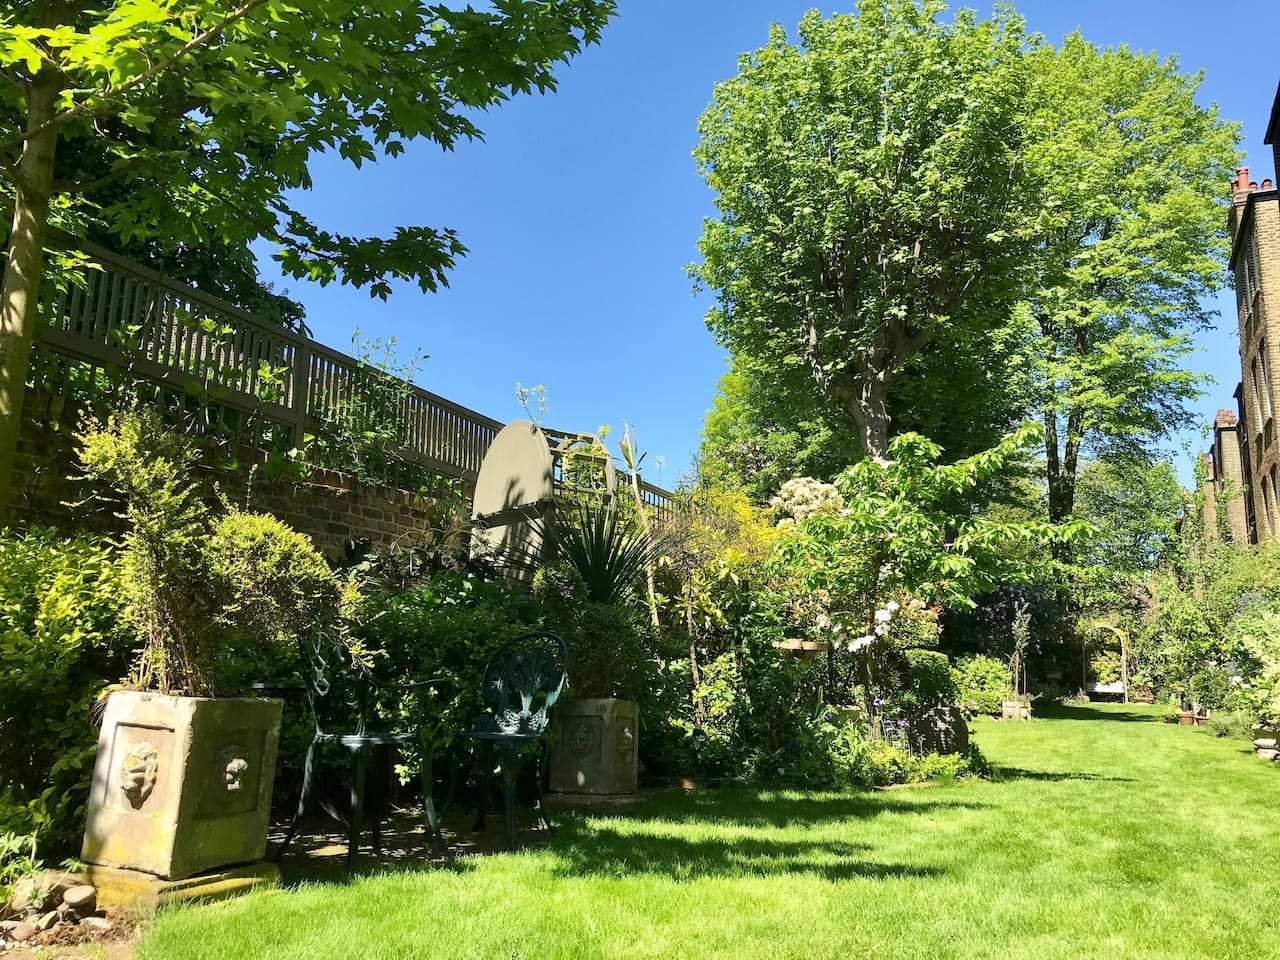 """Winner 2018 """"Best Garden in Chelsea""""   Beautiful award-winning private garden with fish ponds and water fountains (this is just half of it!)   It's maintained daily by a gardener and is a peaceful haven in London.  The photos really don't do the garden justice, it was the biggest selling point for me!"""